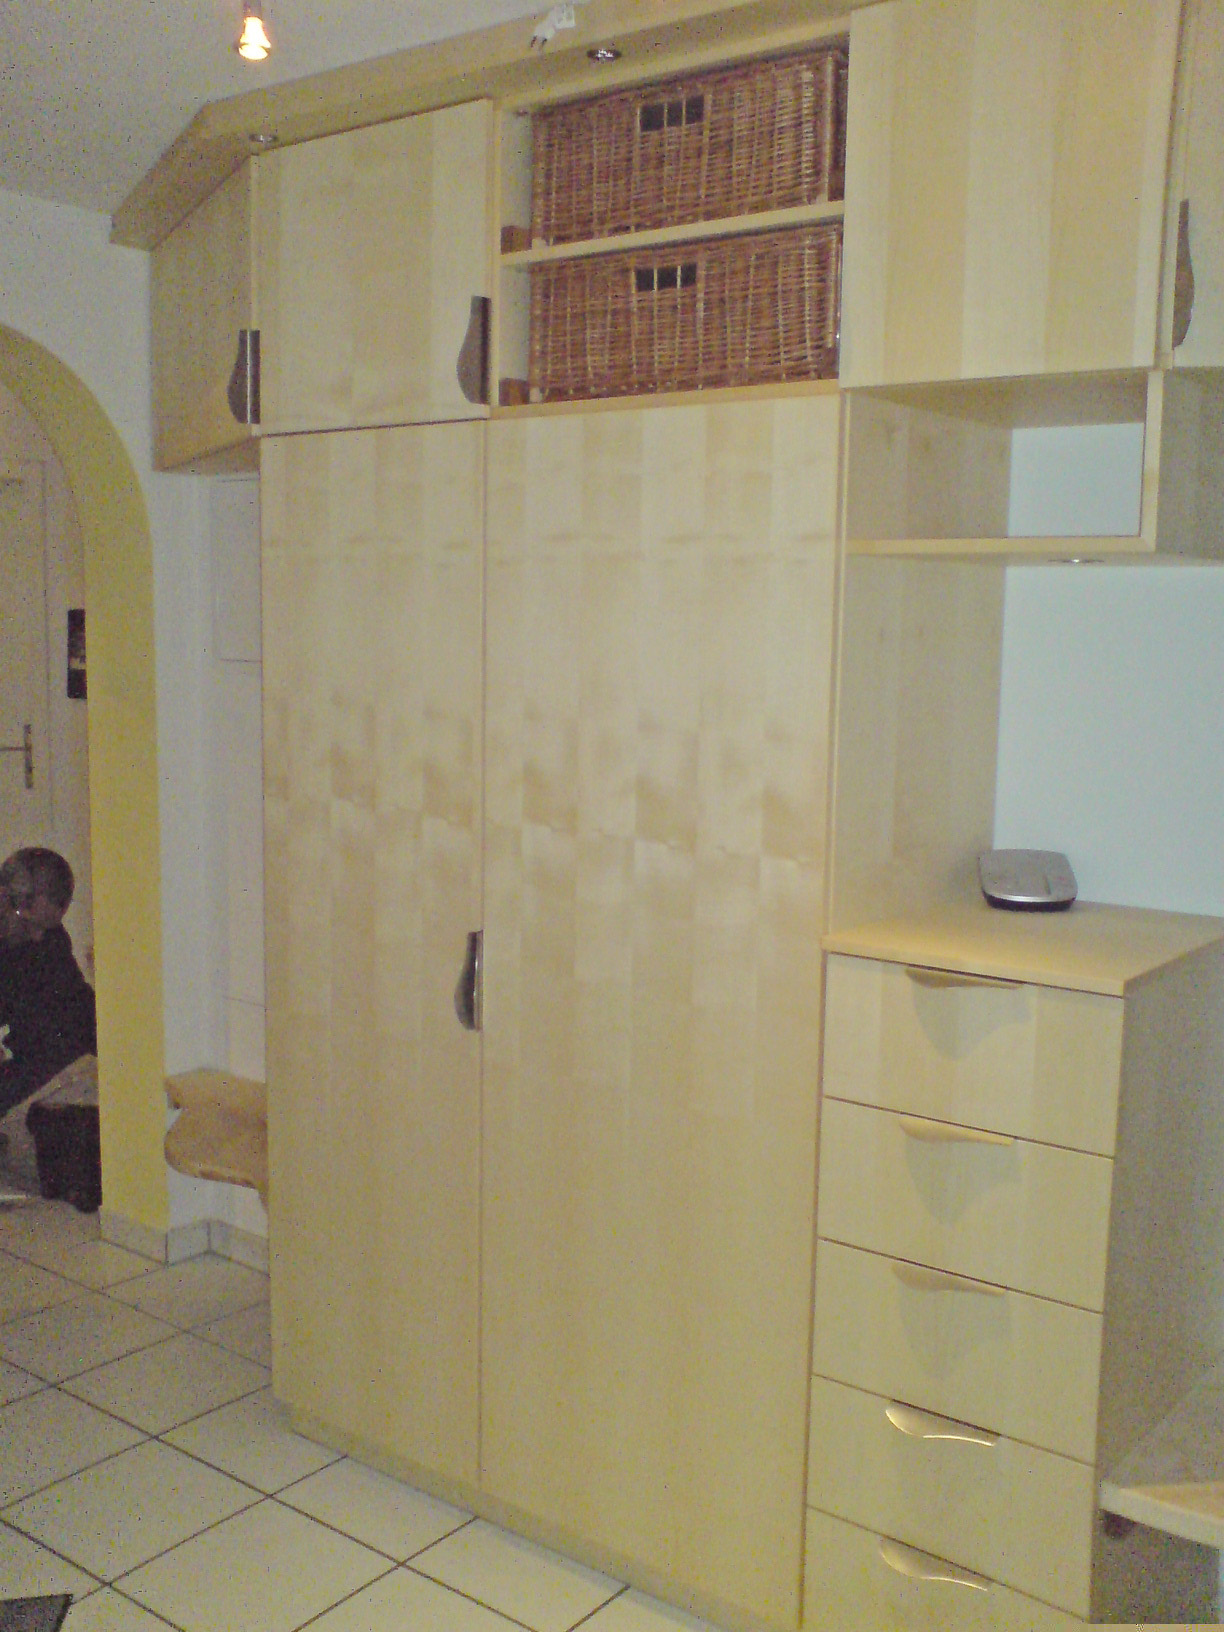 Garderobe christian holzapfel for Christian holzapfel